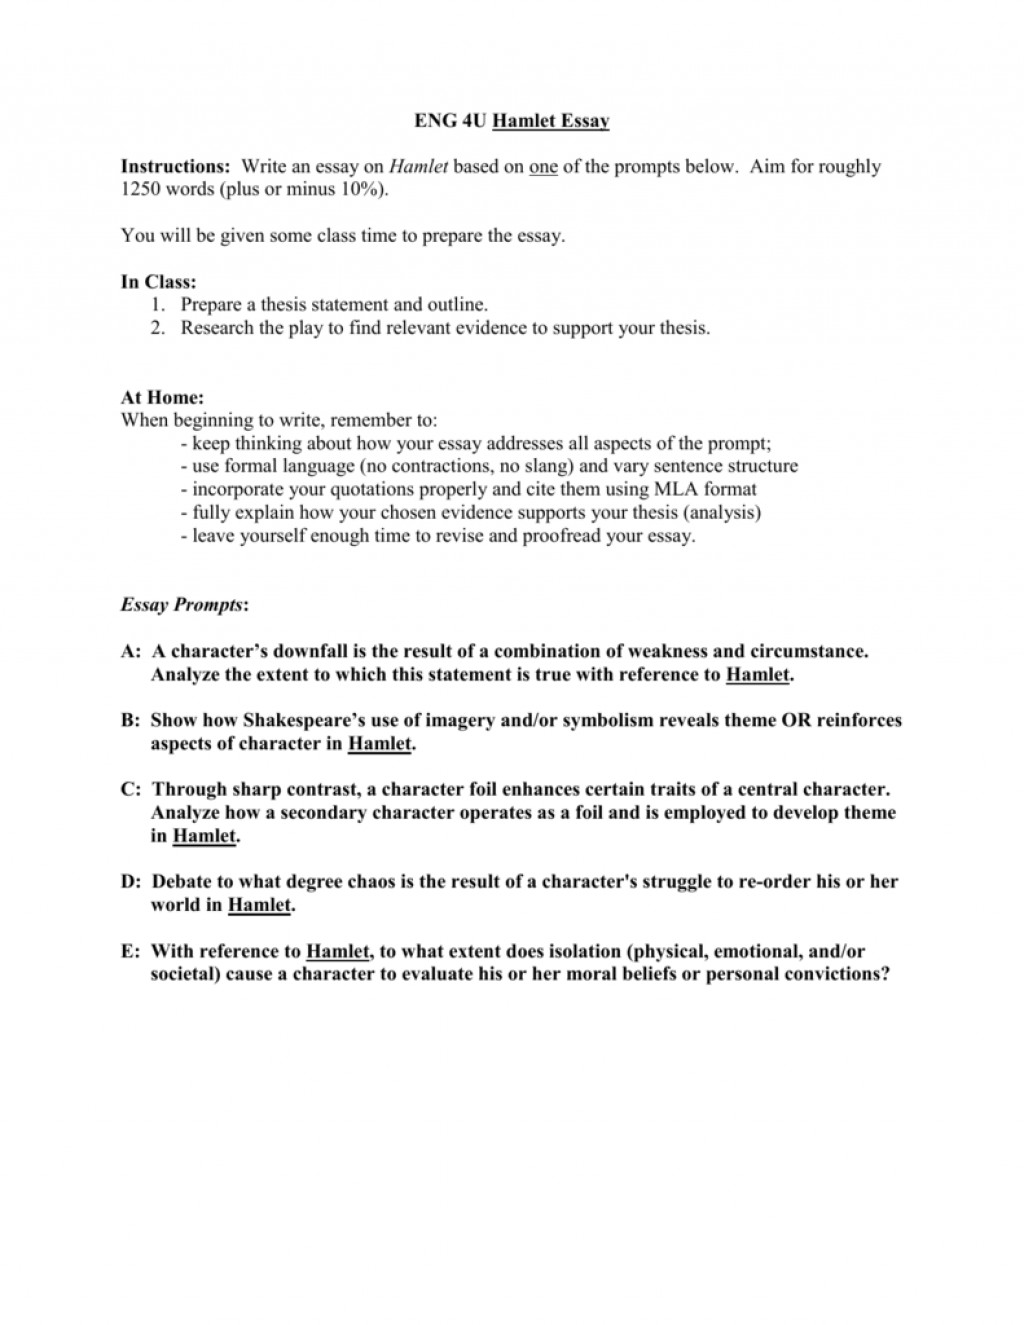 005 Essay Example 008038423 1 University Of Chicago Striking Prompts Word Limit Loyola Weird Large